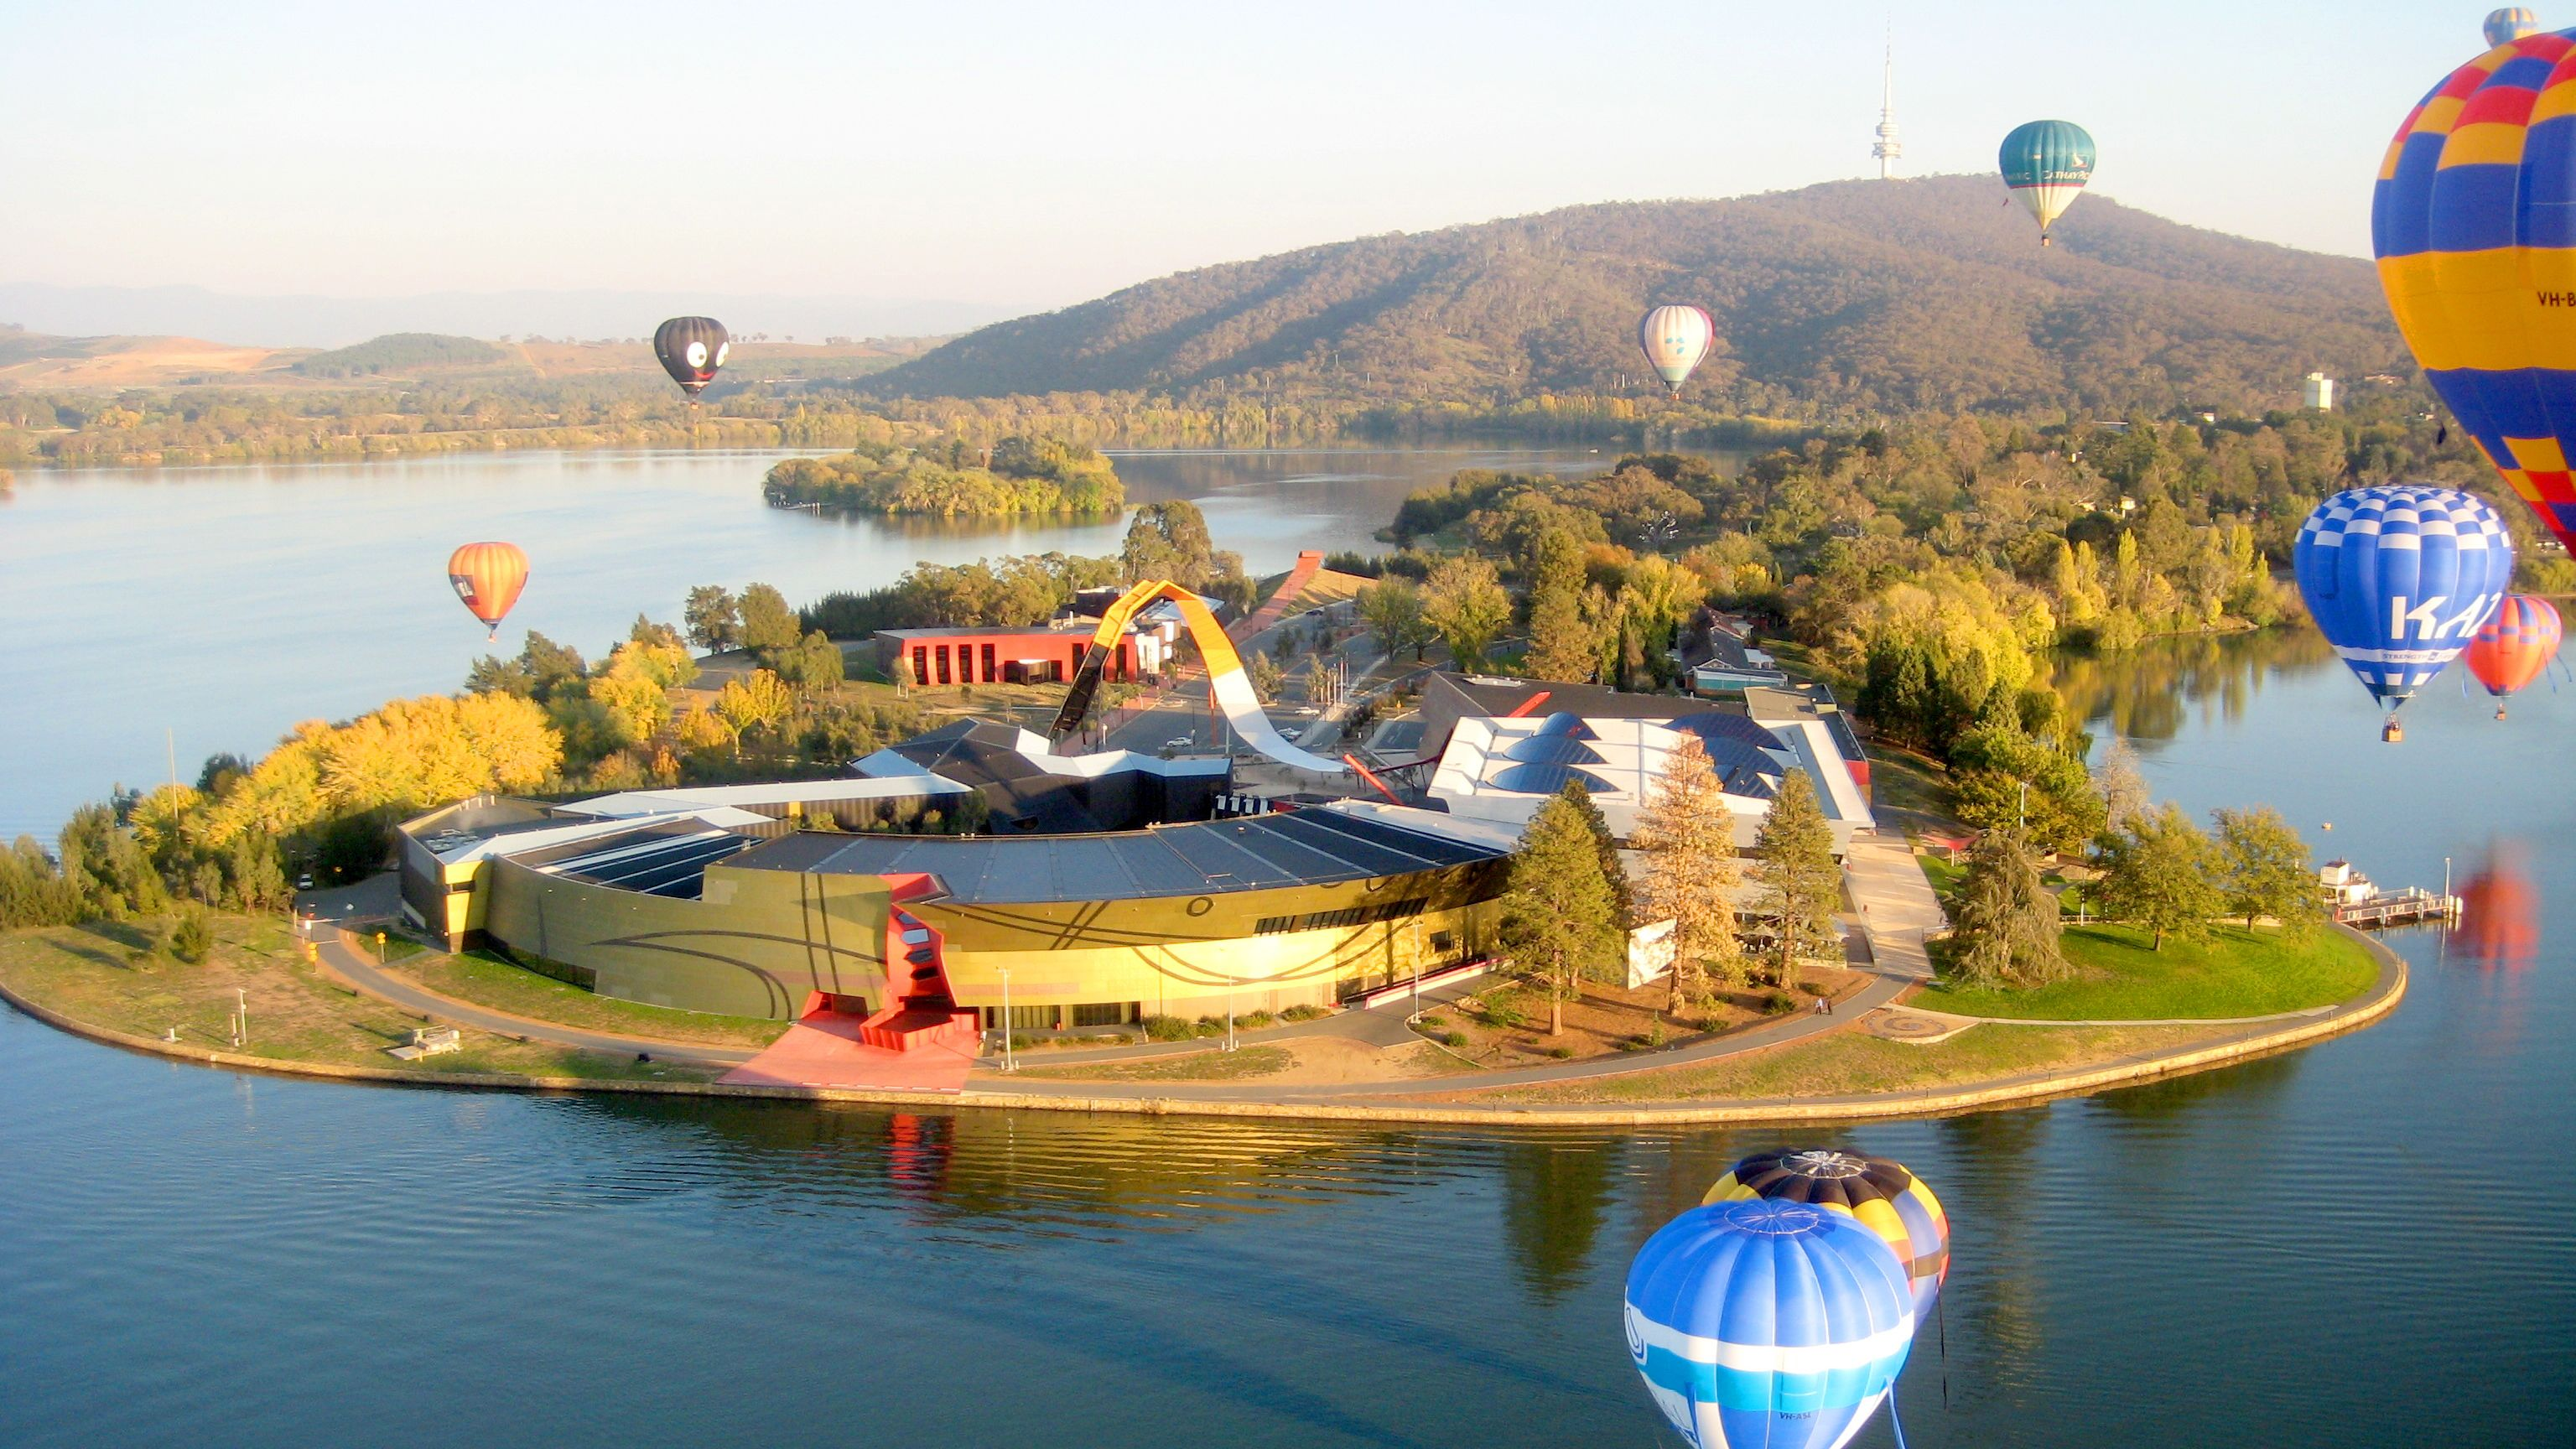 Hot air balloons flying around a peninsula near Canberra.